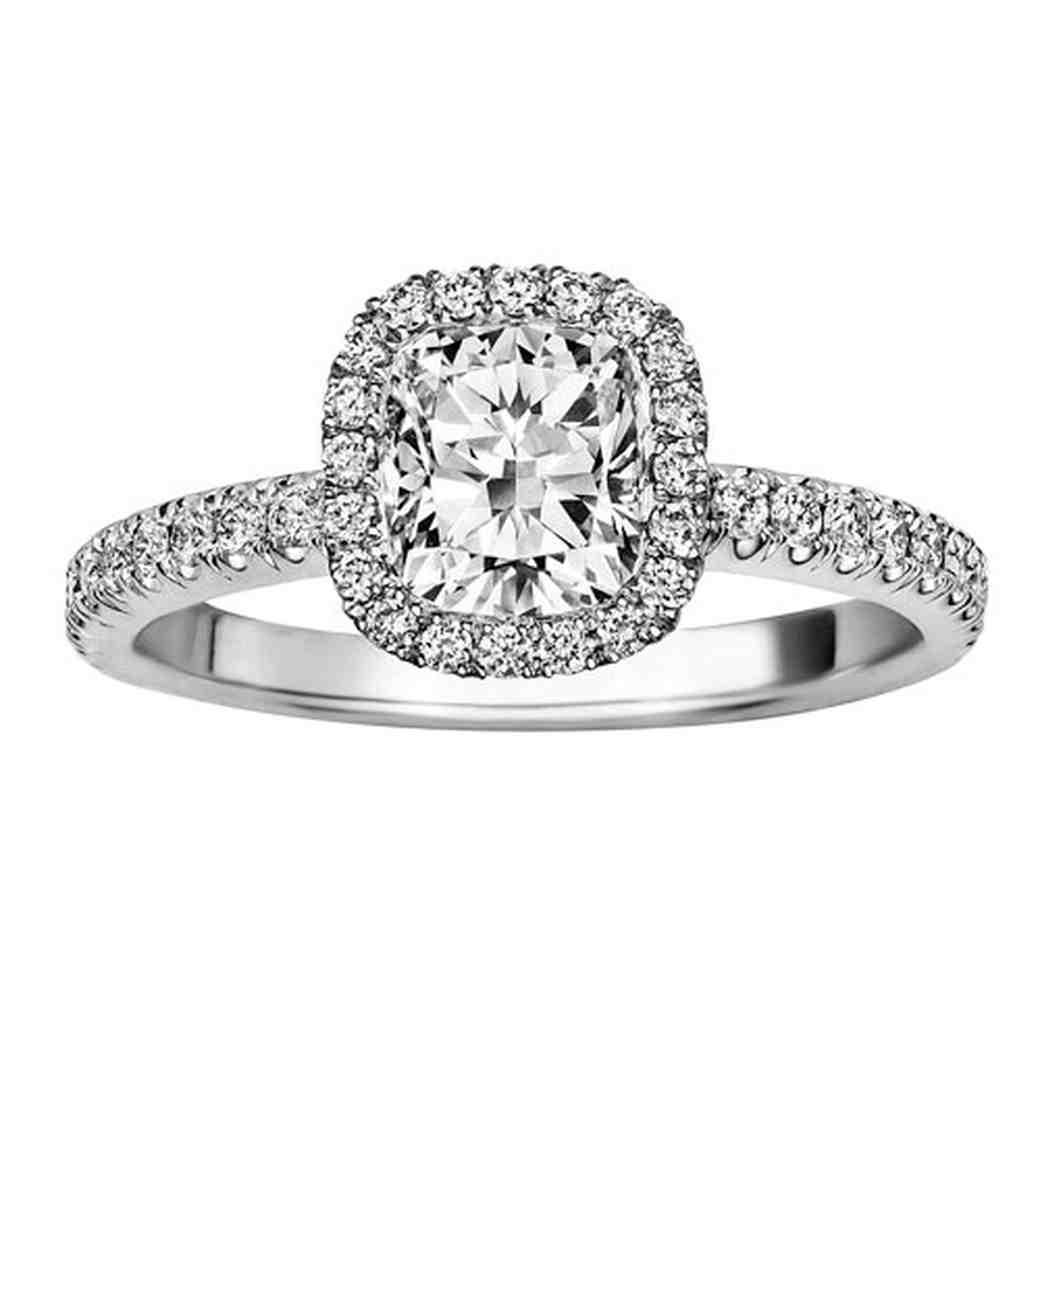 Cushion-Cut Diamond Engagement Ring from De Beers